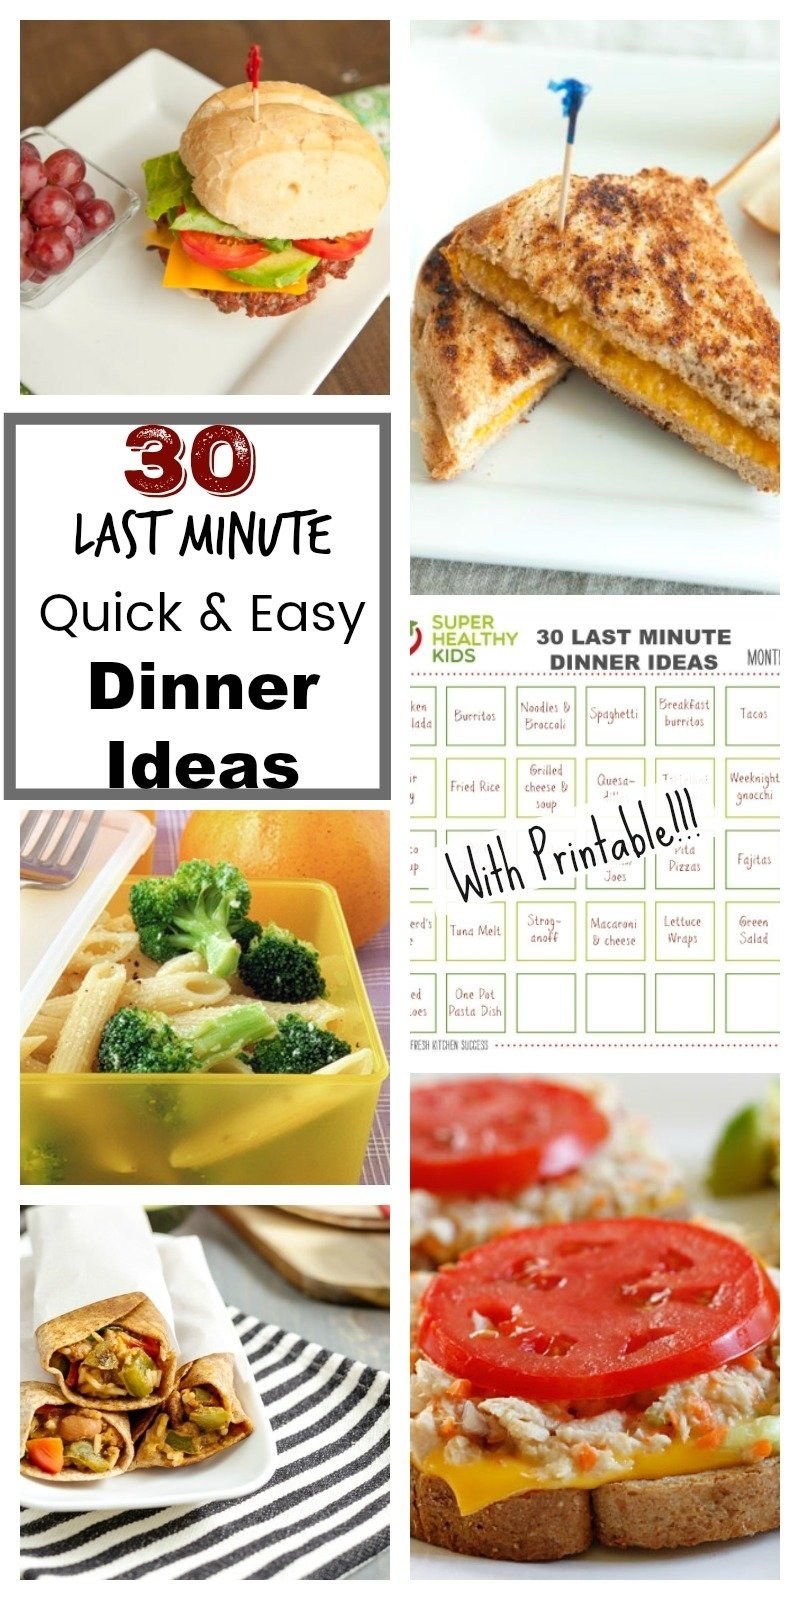 10 Unique Quick And Easy Lunch Ideas 30 quick and easy last minute dinner ideas healthy ideas for kids 3 2020